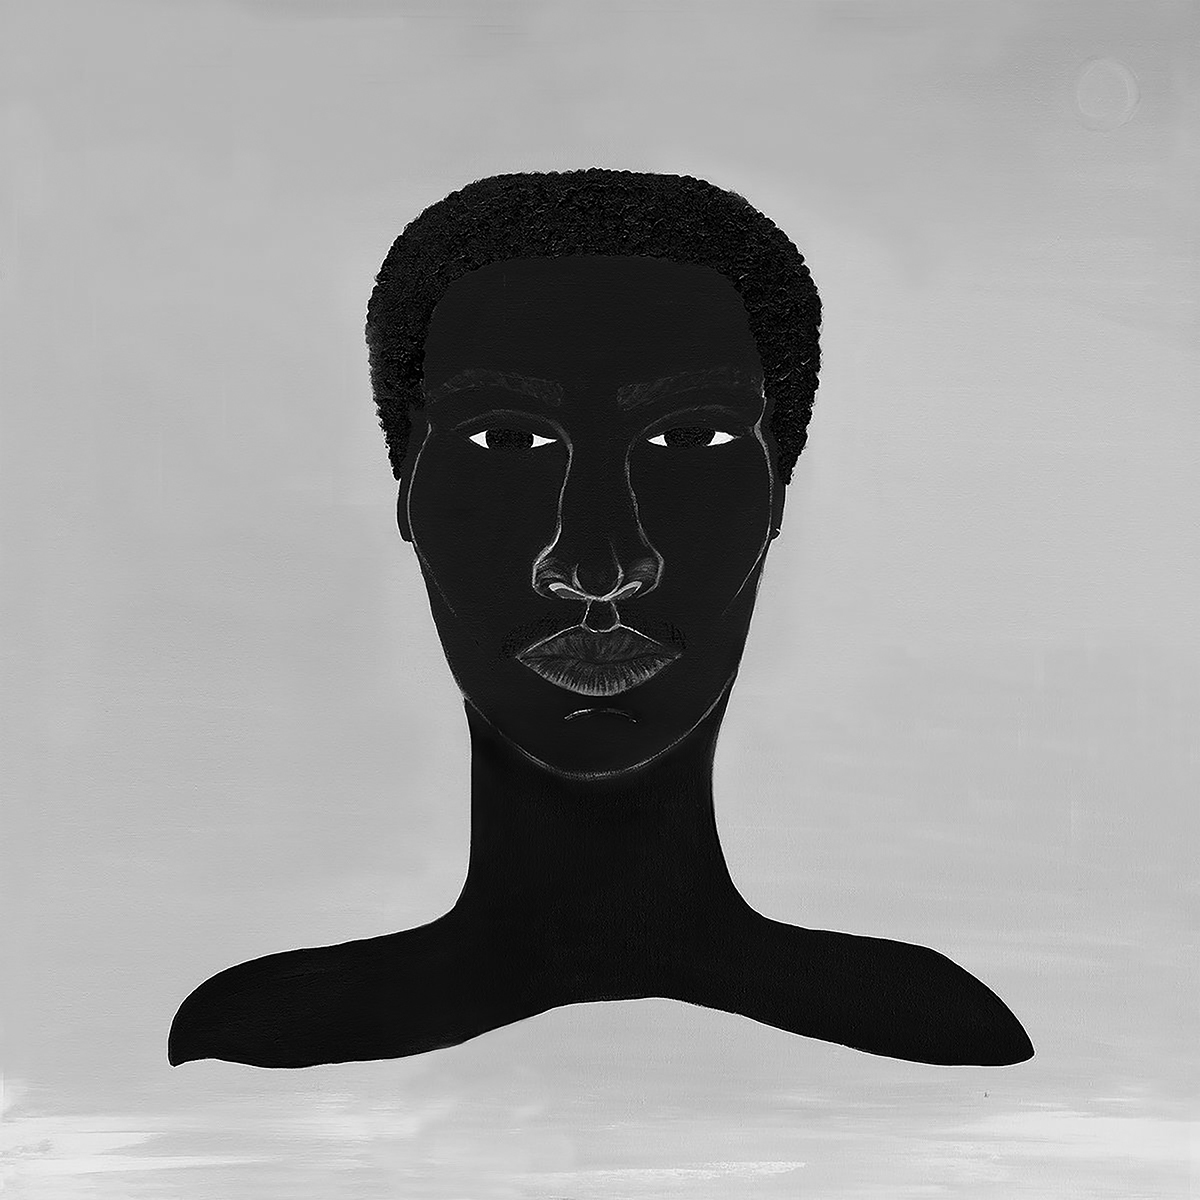 Album cover for For(e)ward by Made Kuti. It's a grayscale illustration of a dark-skinned person from the shoulders up. They are facing us and have a solemn expression. The background is a light gray.